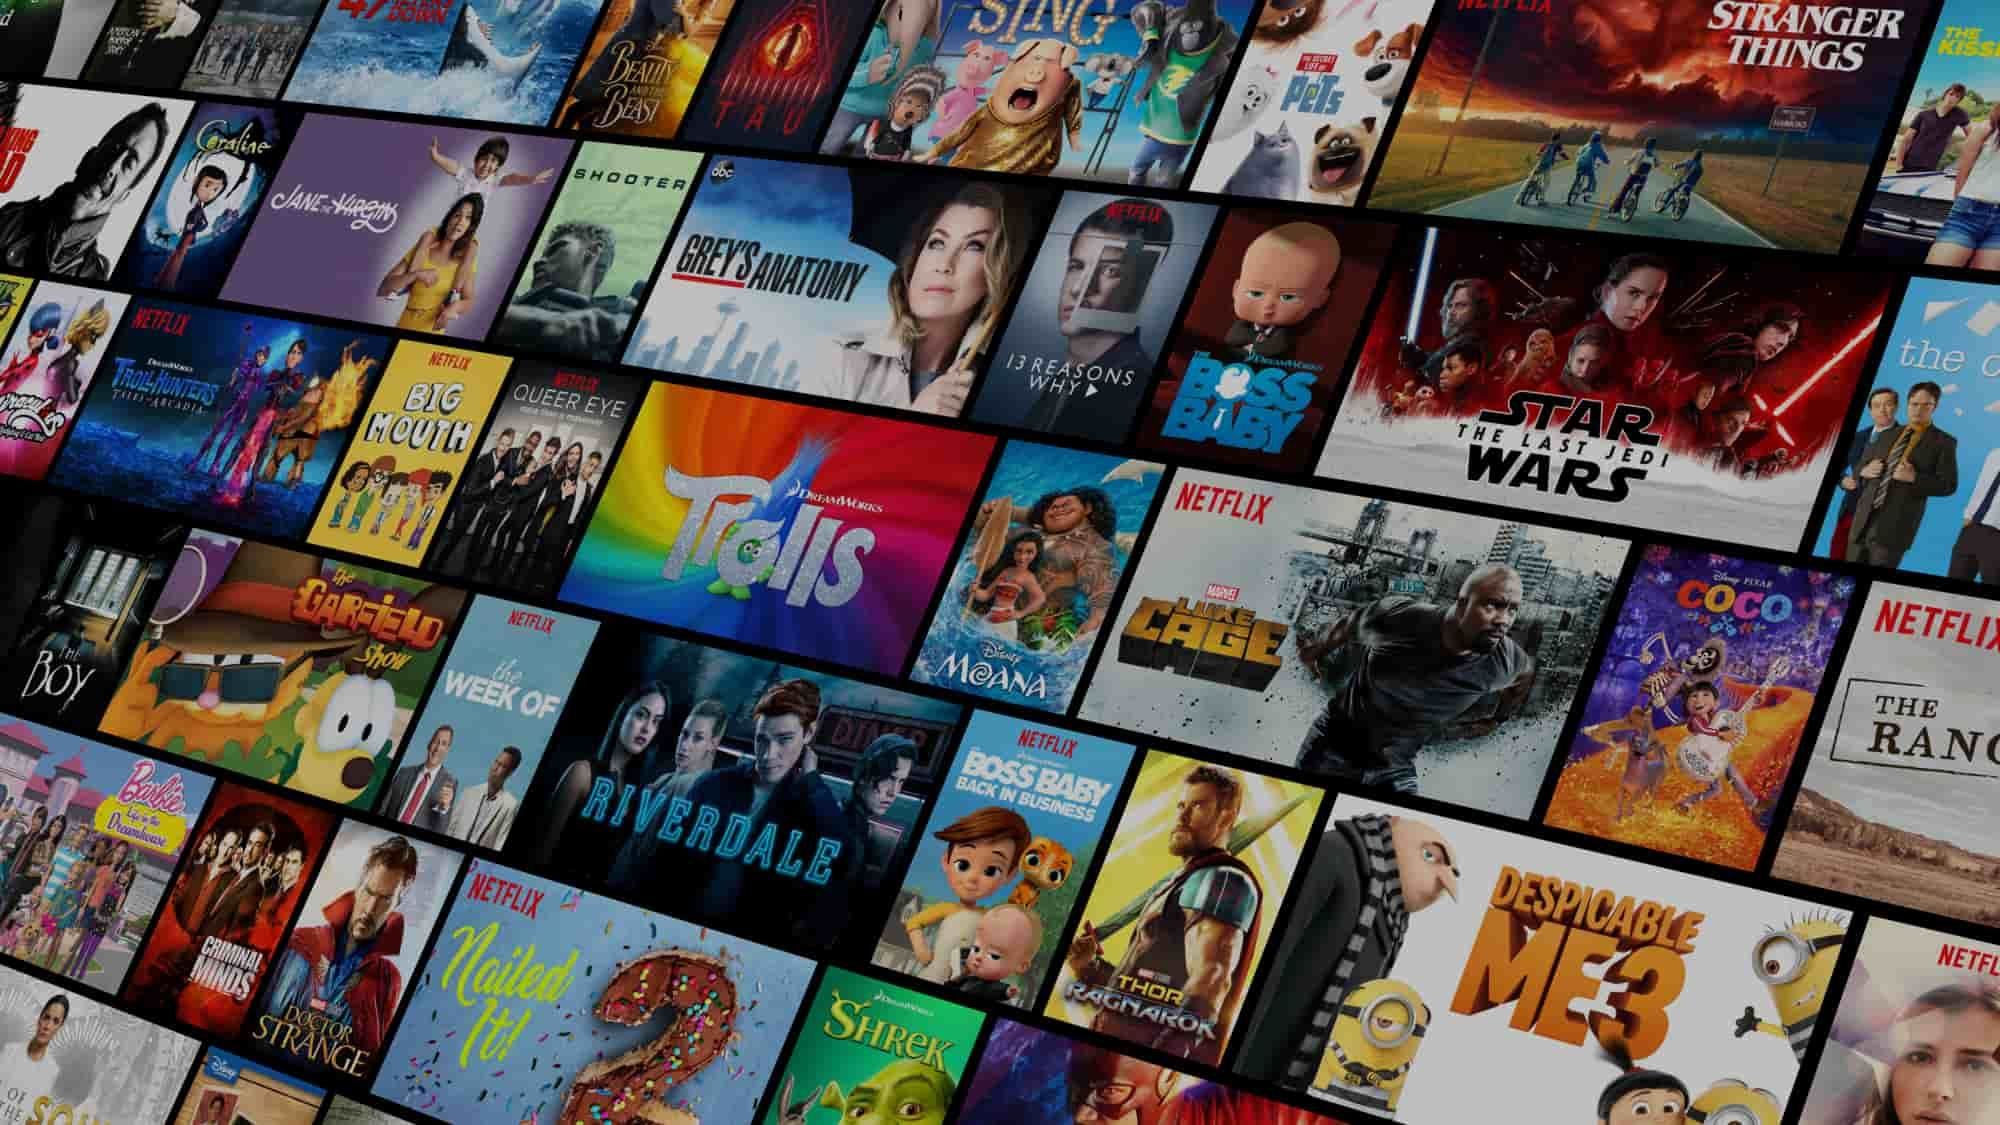 Netflix Watch TV Shows Online, Watch Movies Online Tv